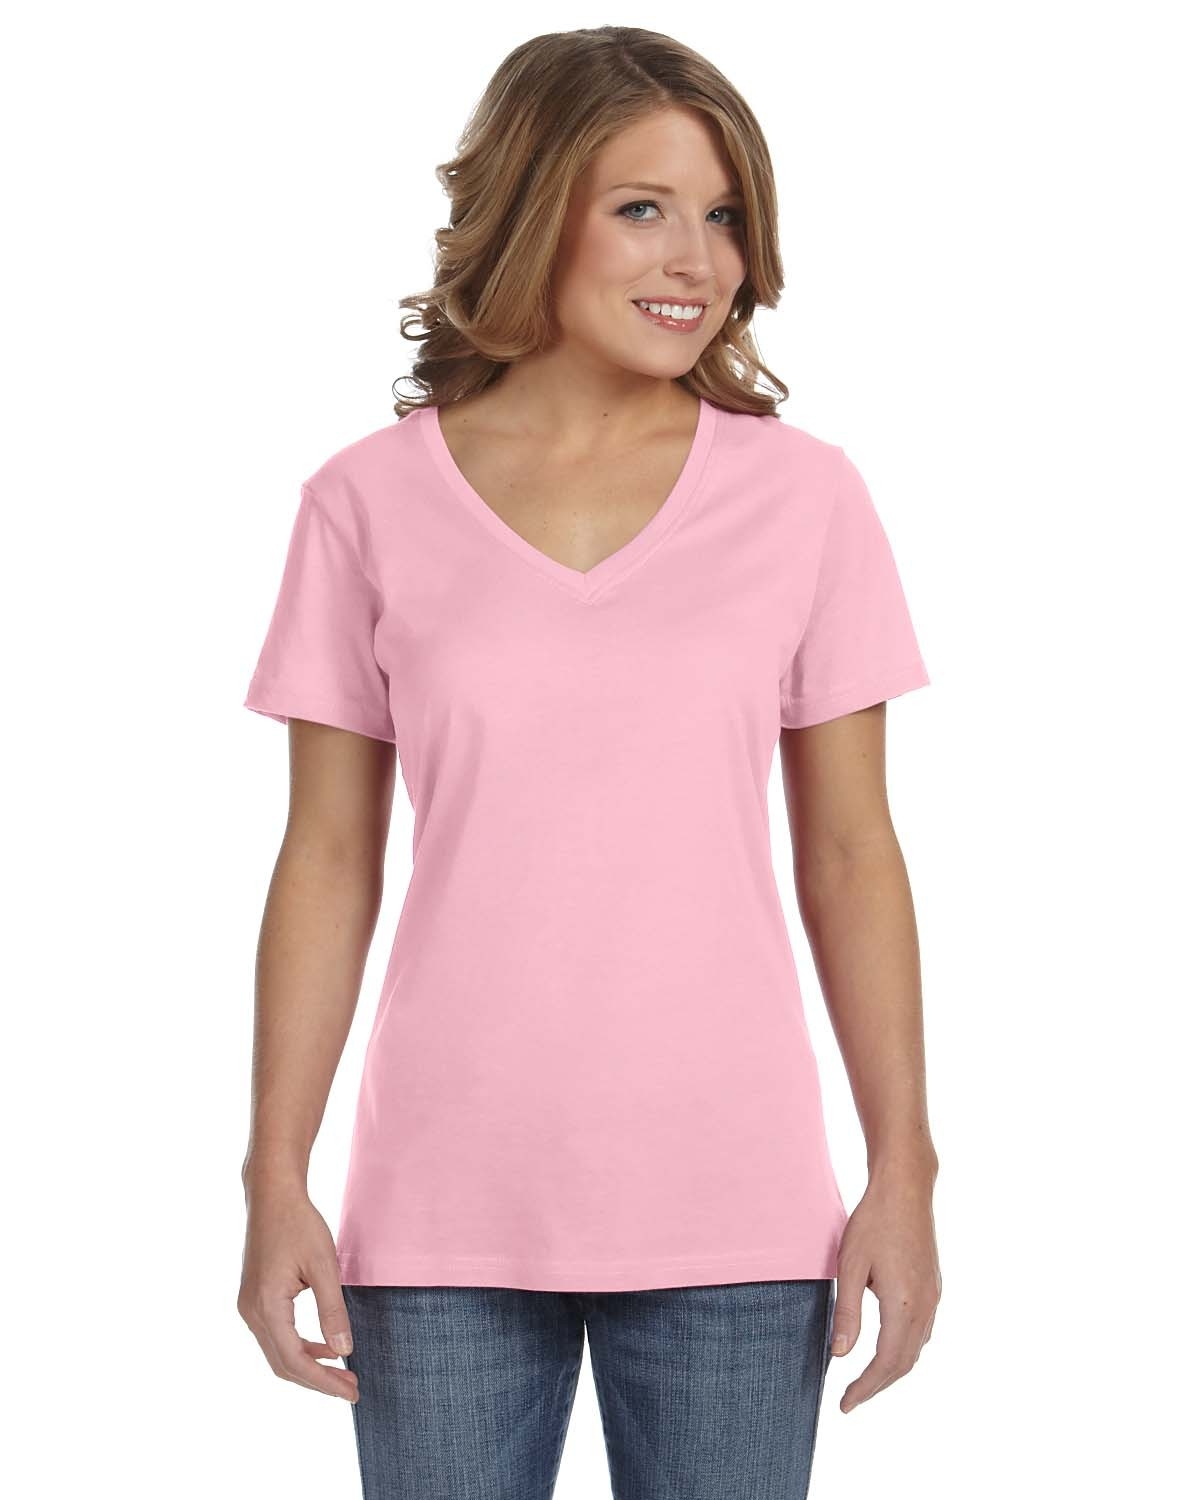 392A Anvil CHARITY PINK